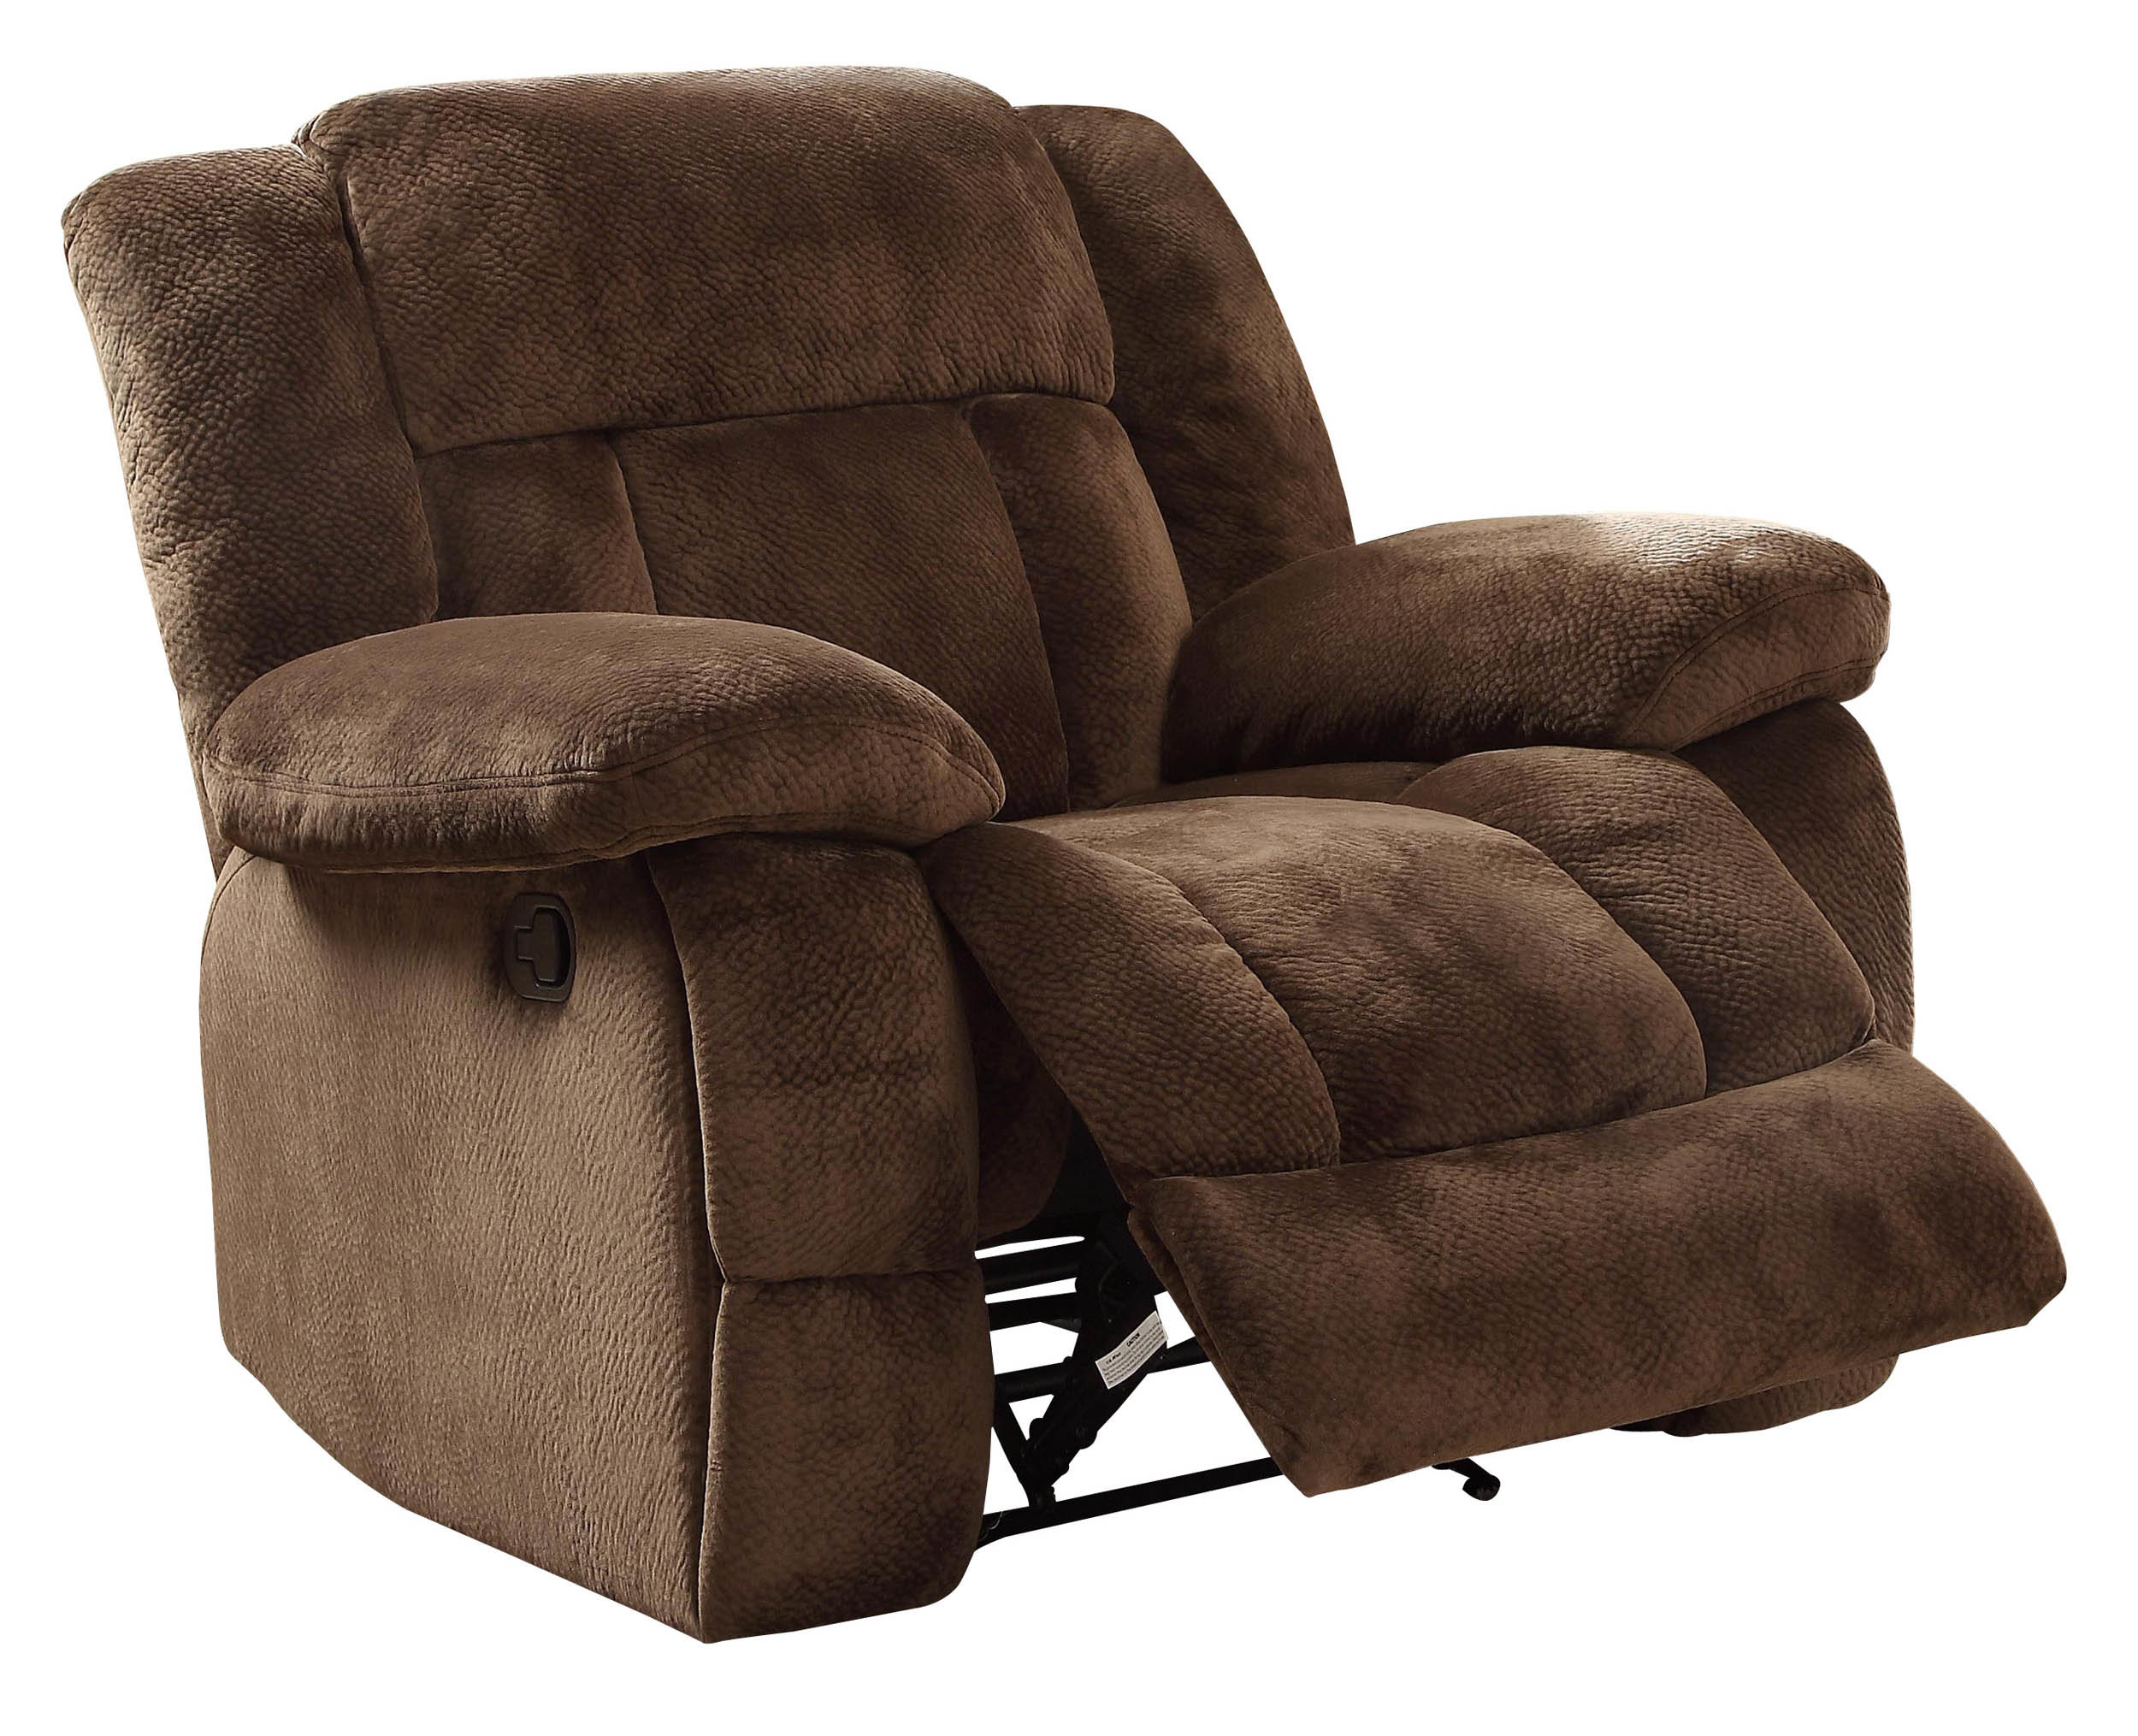 Darby Home Co Dale Manual Glider Recliner & Reviews | Wayfair With Regard To Dale Iii Polyurethane Swivel Glider Recliners (Image 9 of 25)